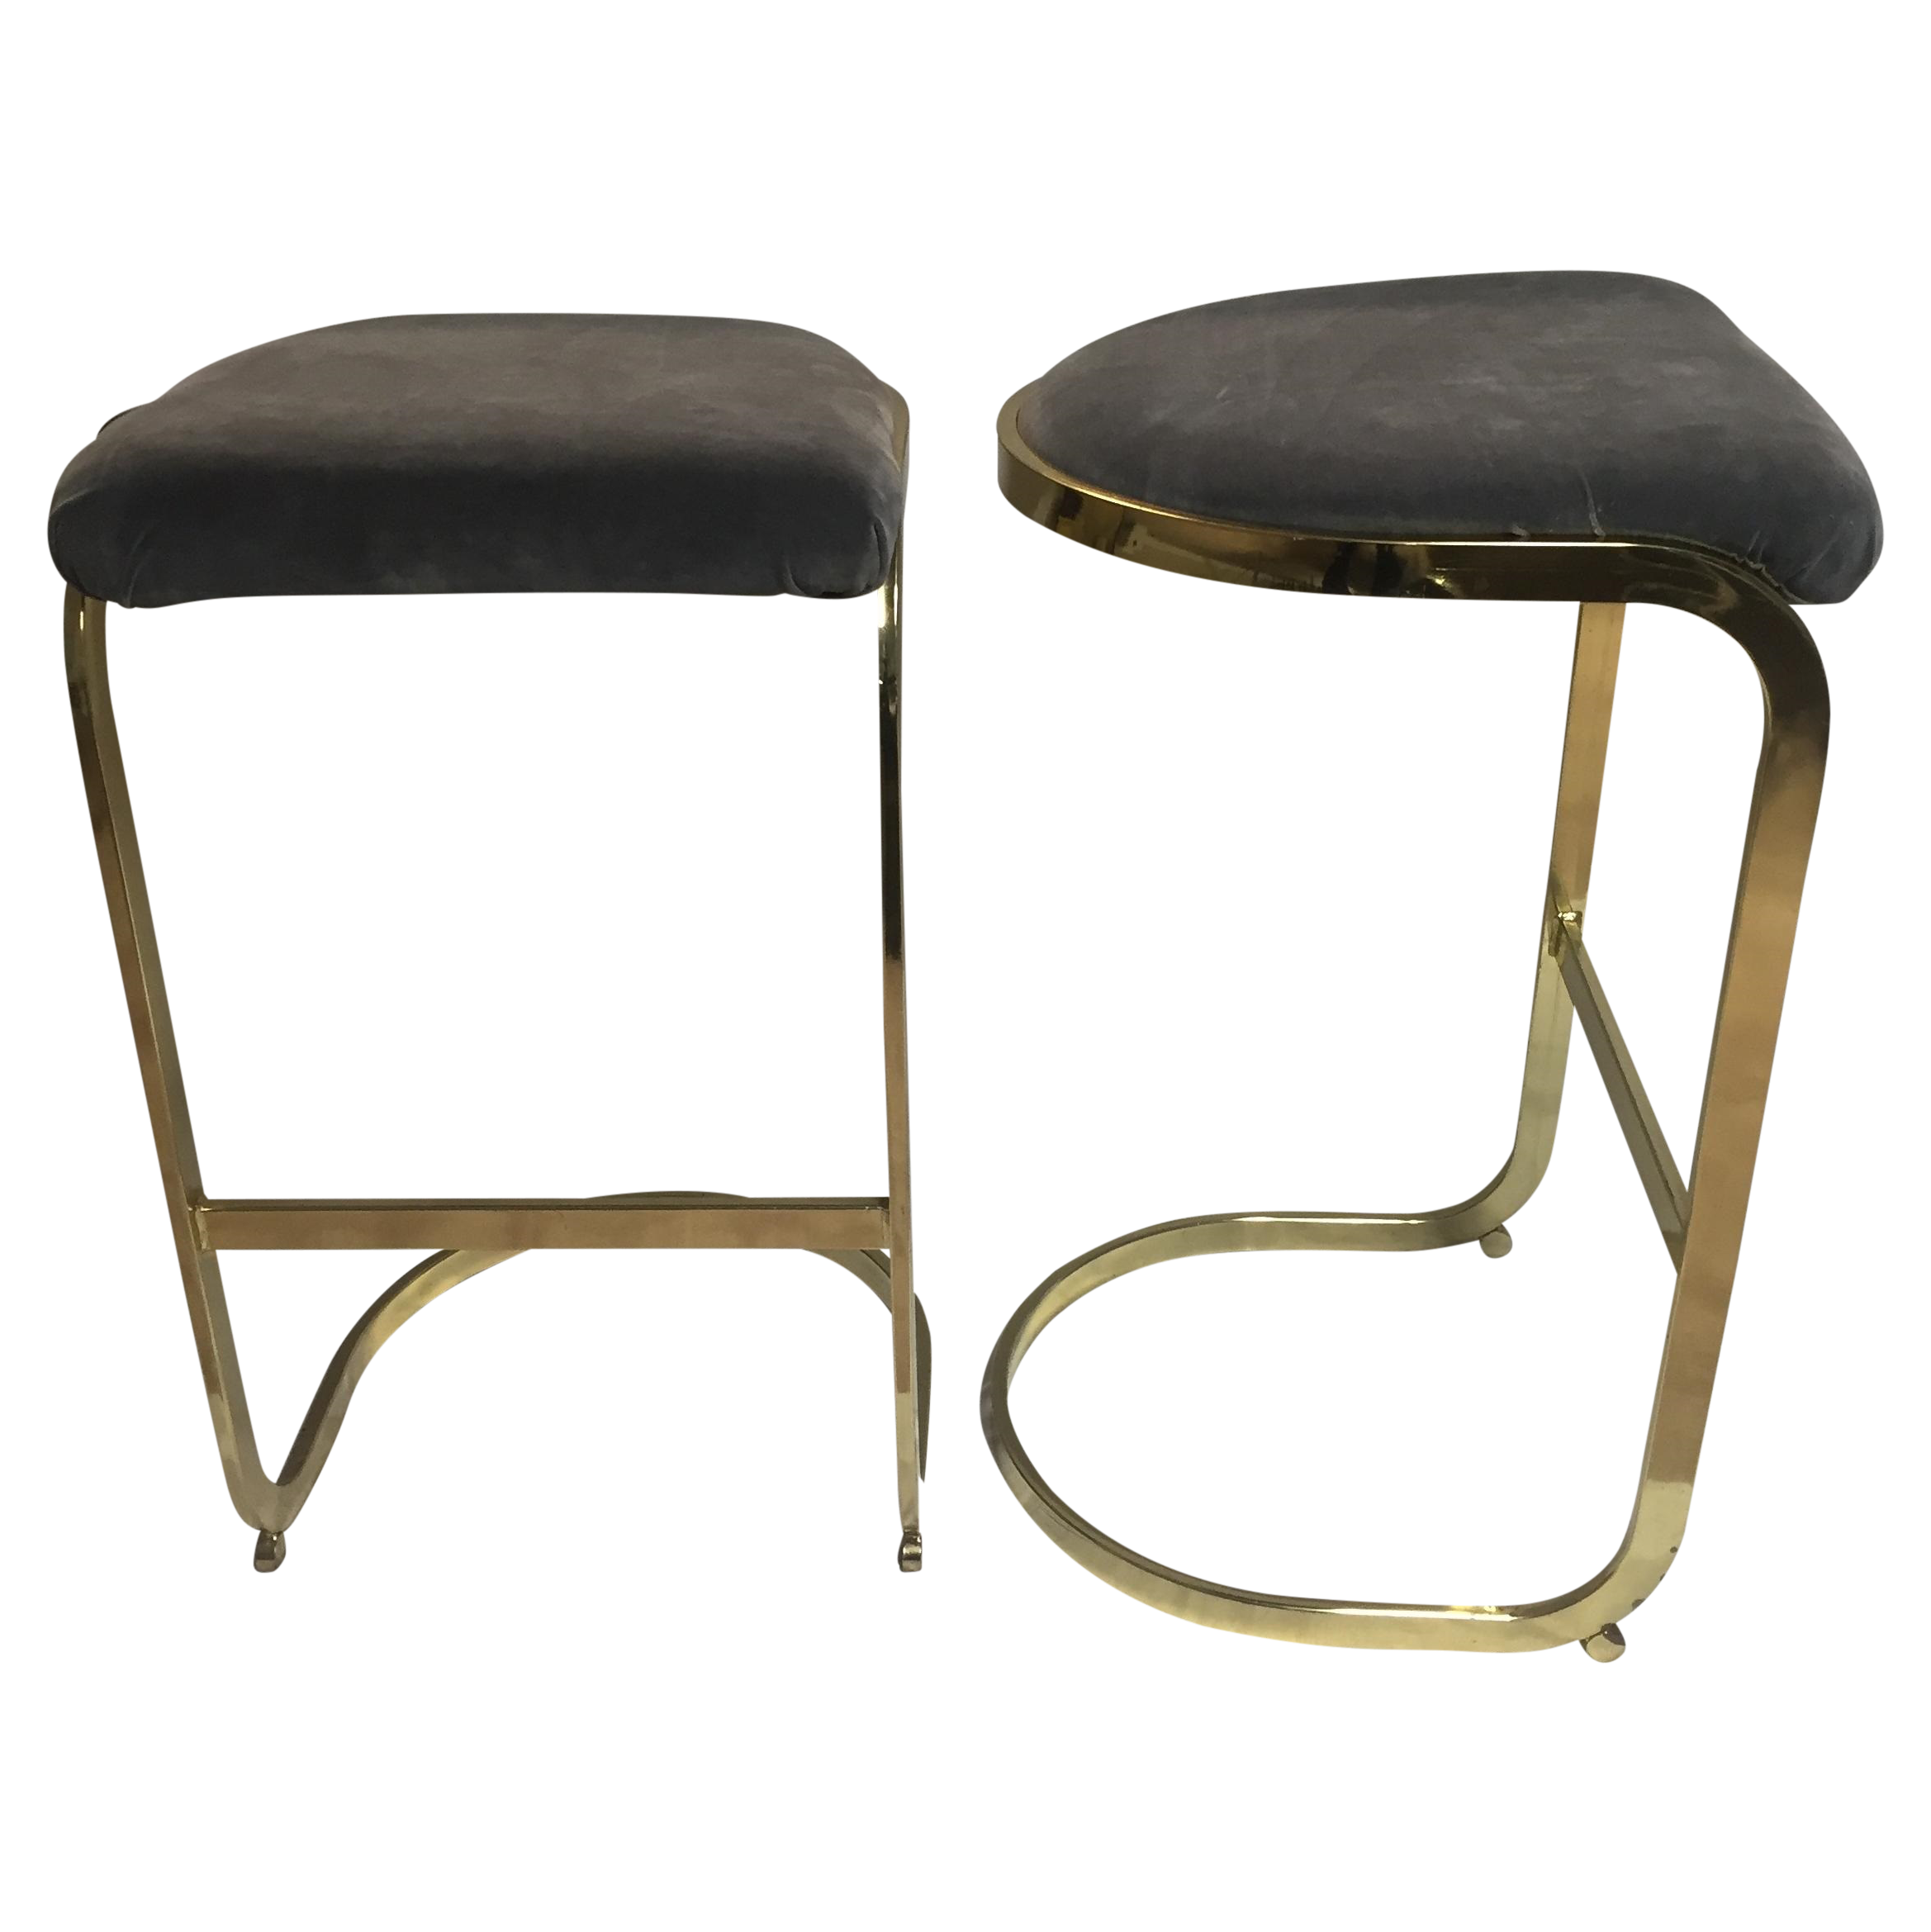 Vintage Brass amp Gray Velvet Bar Stools A Pair Chairish : e8402743 3ce8 466a 870d 82028cb5c802aspectfitampwidth640ampheight640 from www.chairish.com size 640 x 640 jpeg 28kB